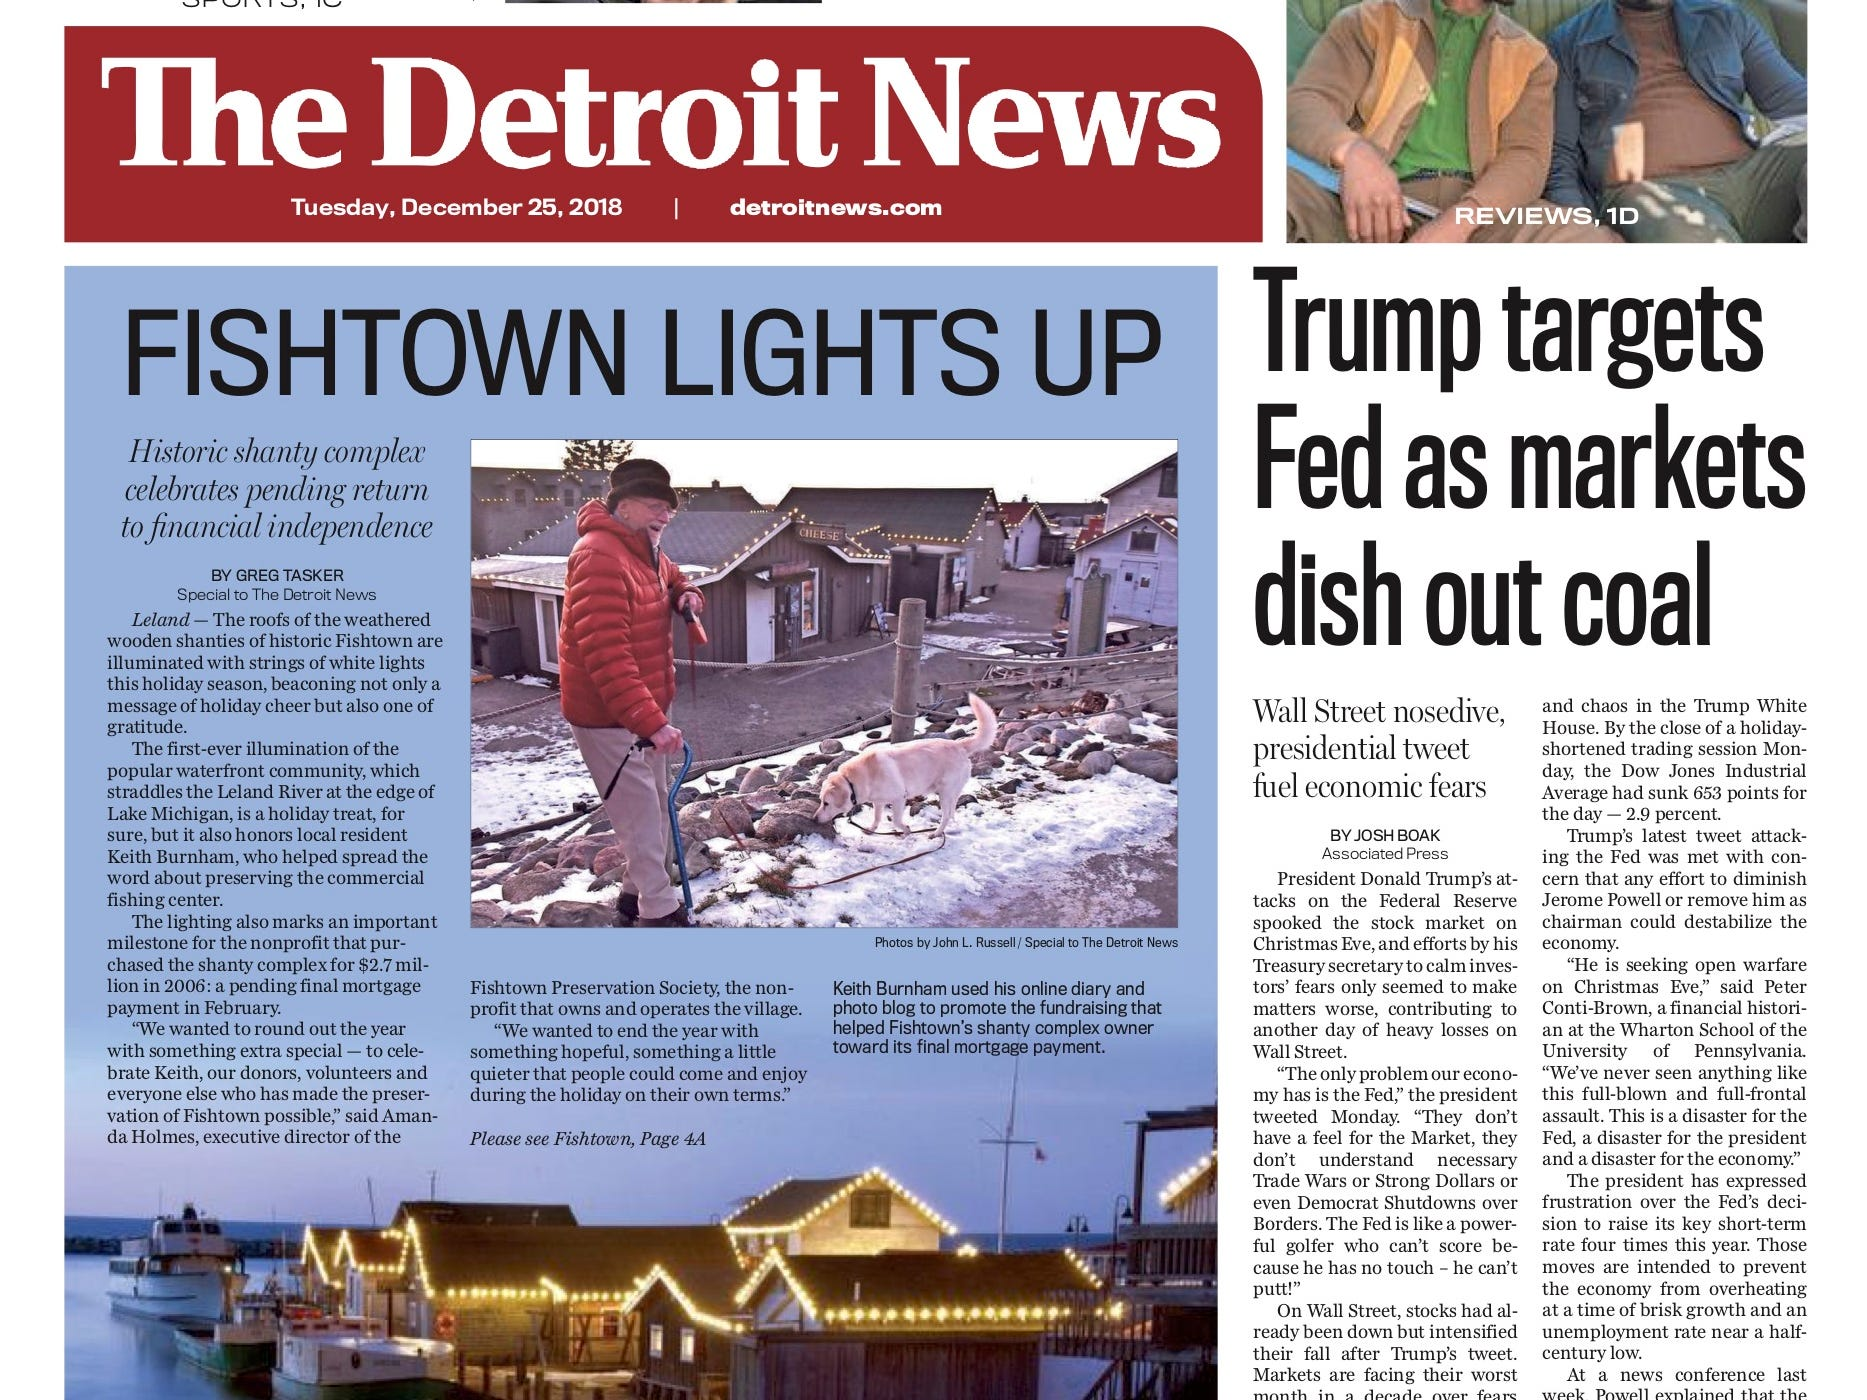 The front page of the Detroit News on December 25, 2018